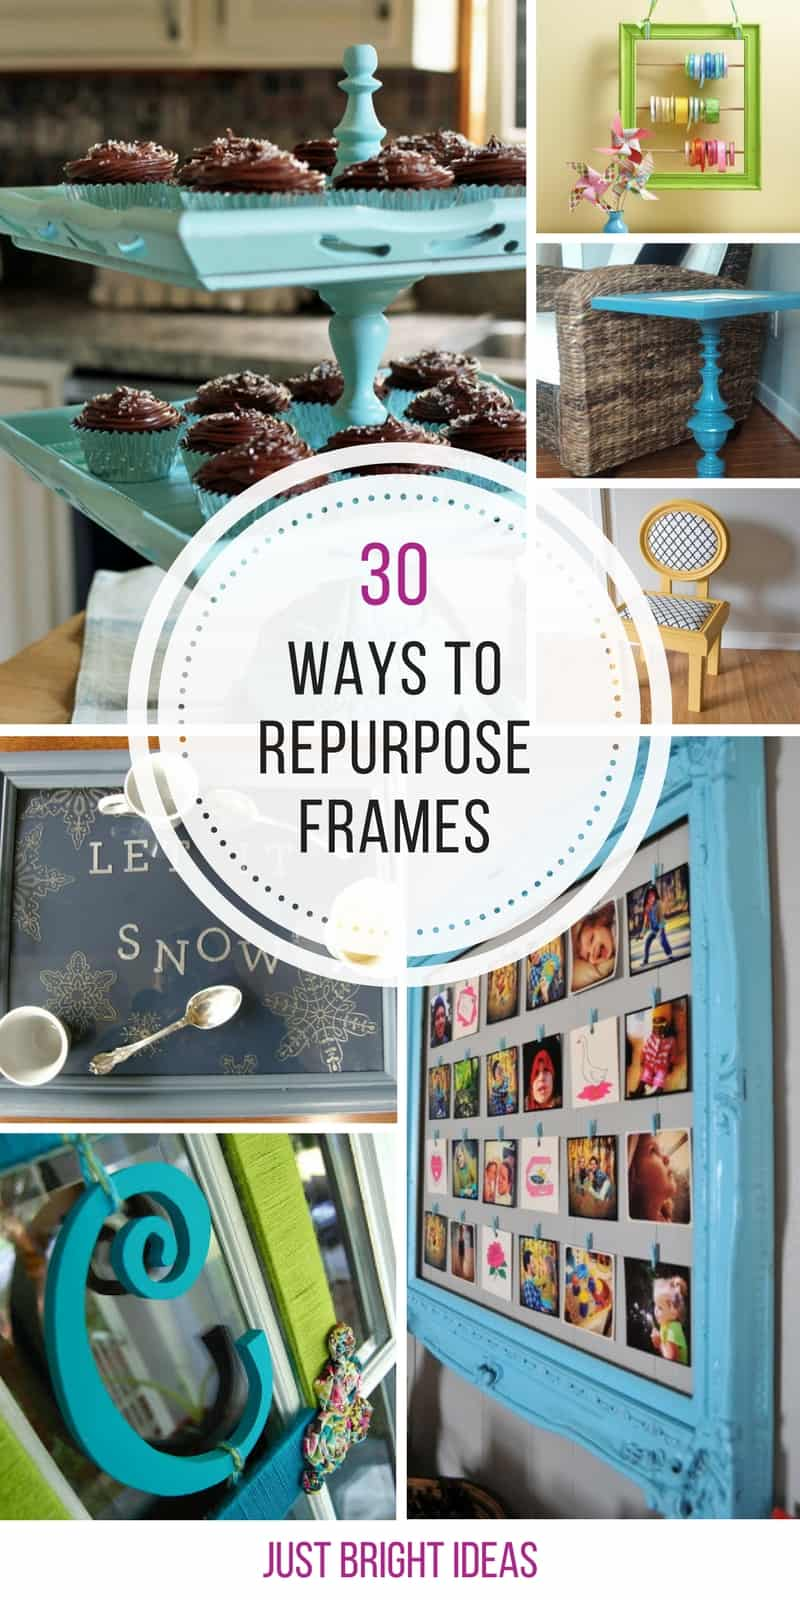 These repurposing projects for old picture frames are genius! Thanks for sharing!